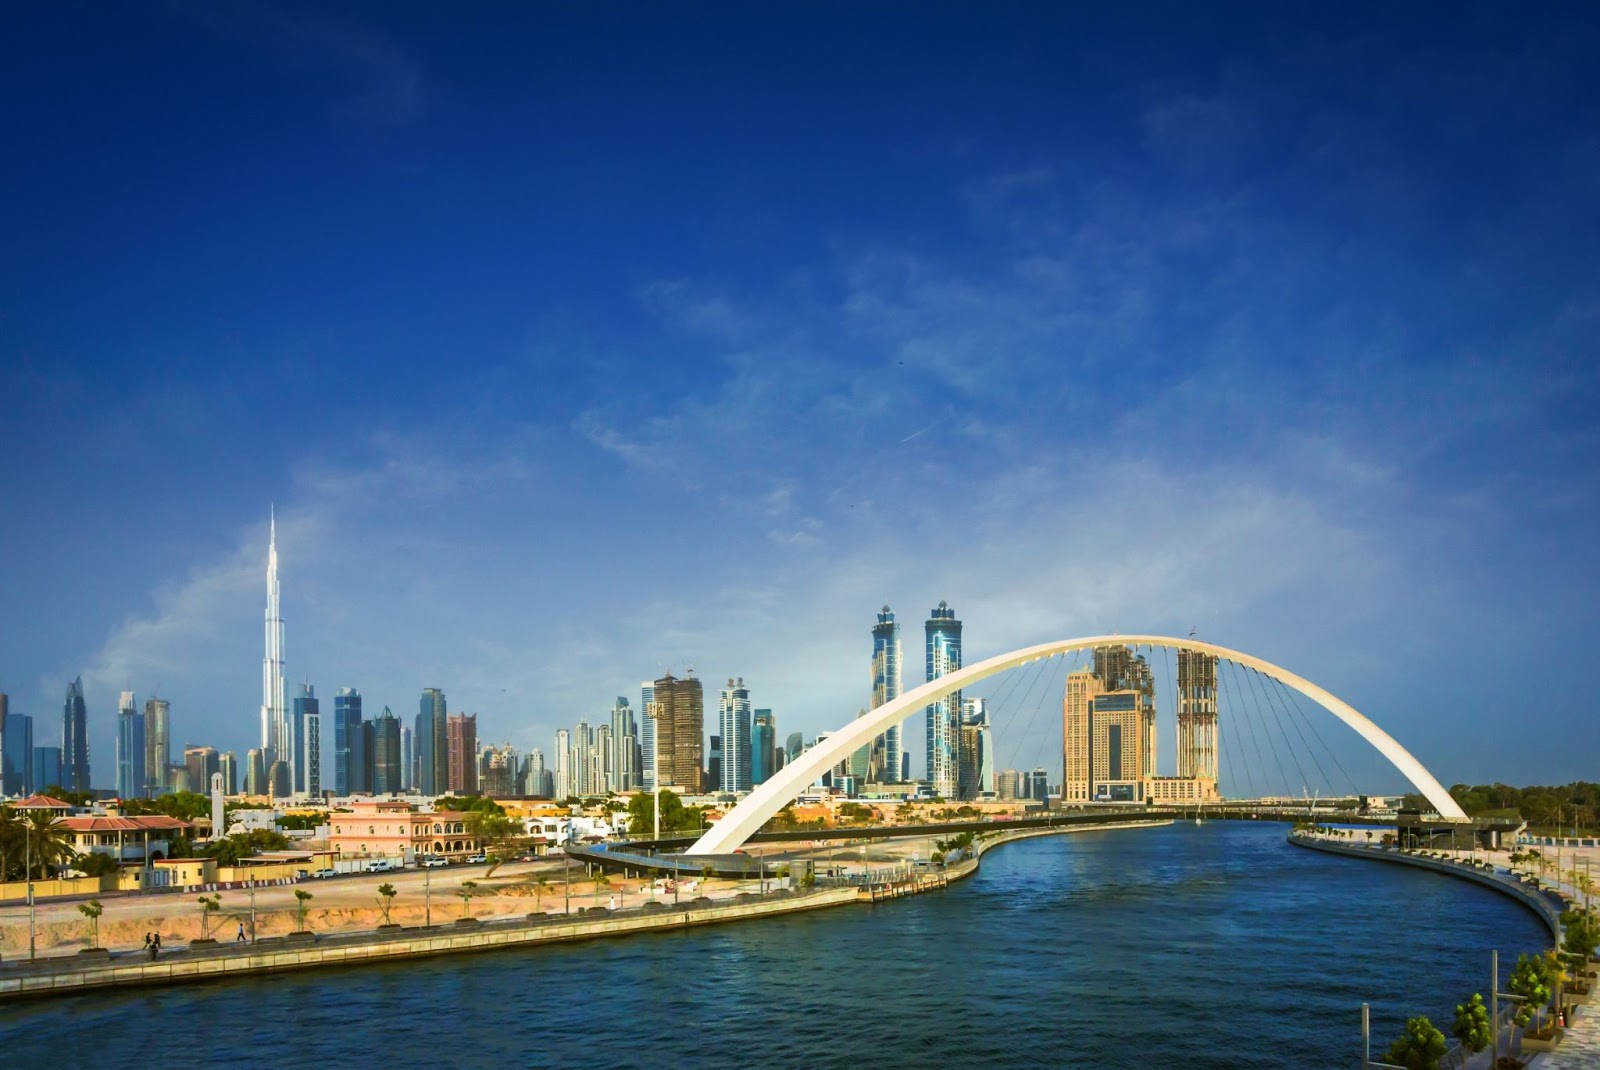 Much of Dubai's water is desalinated water from the sea, thanks to its dry desert location.